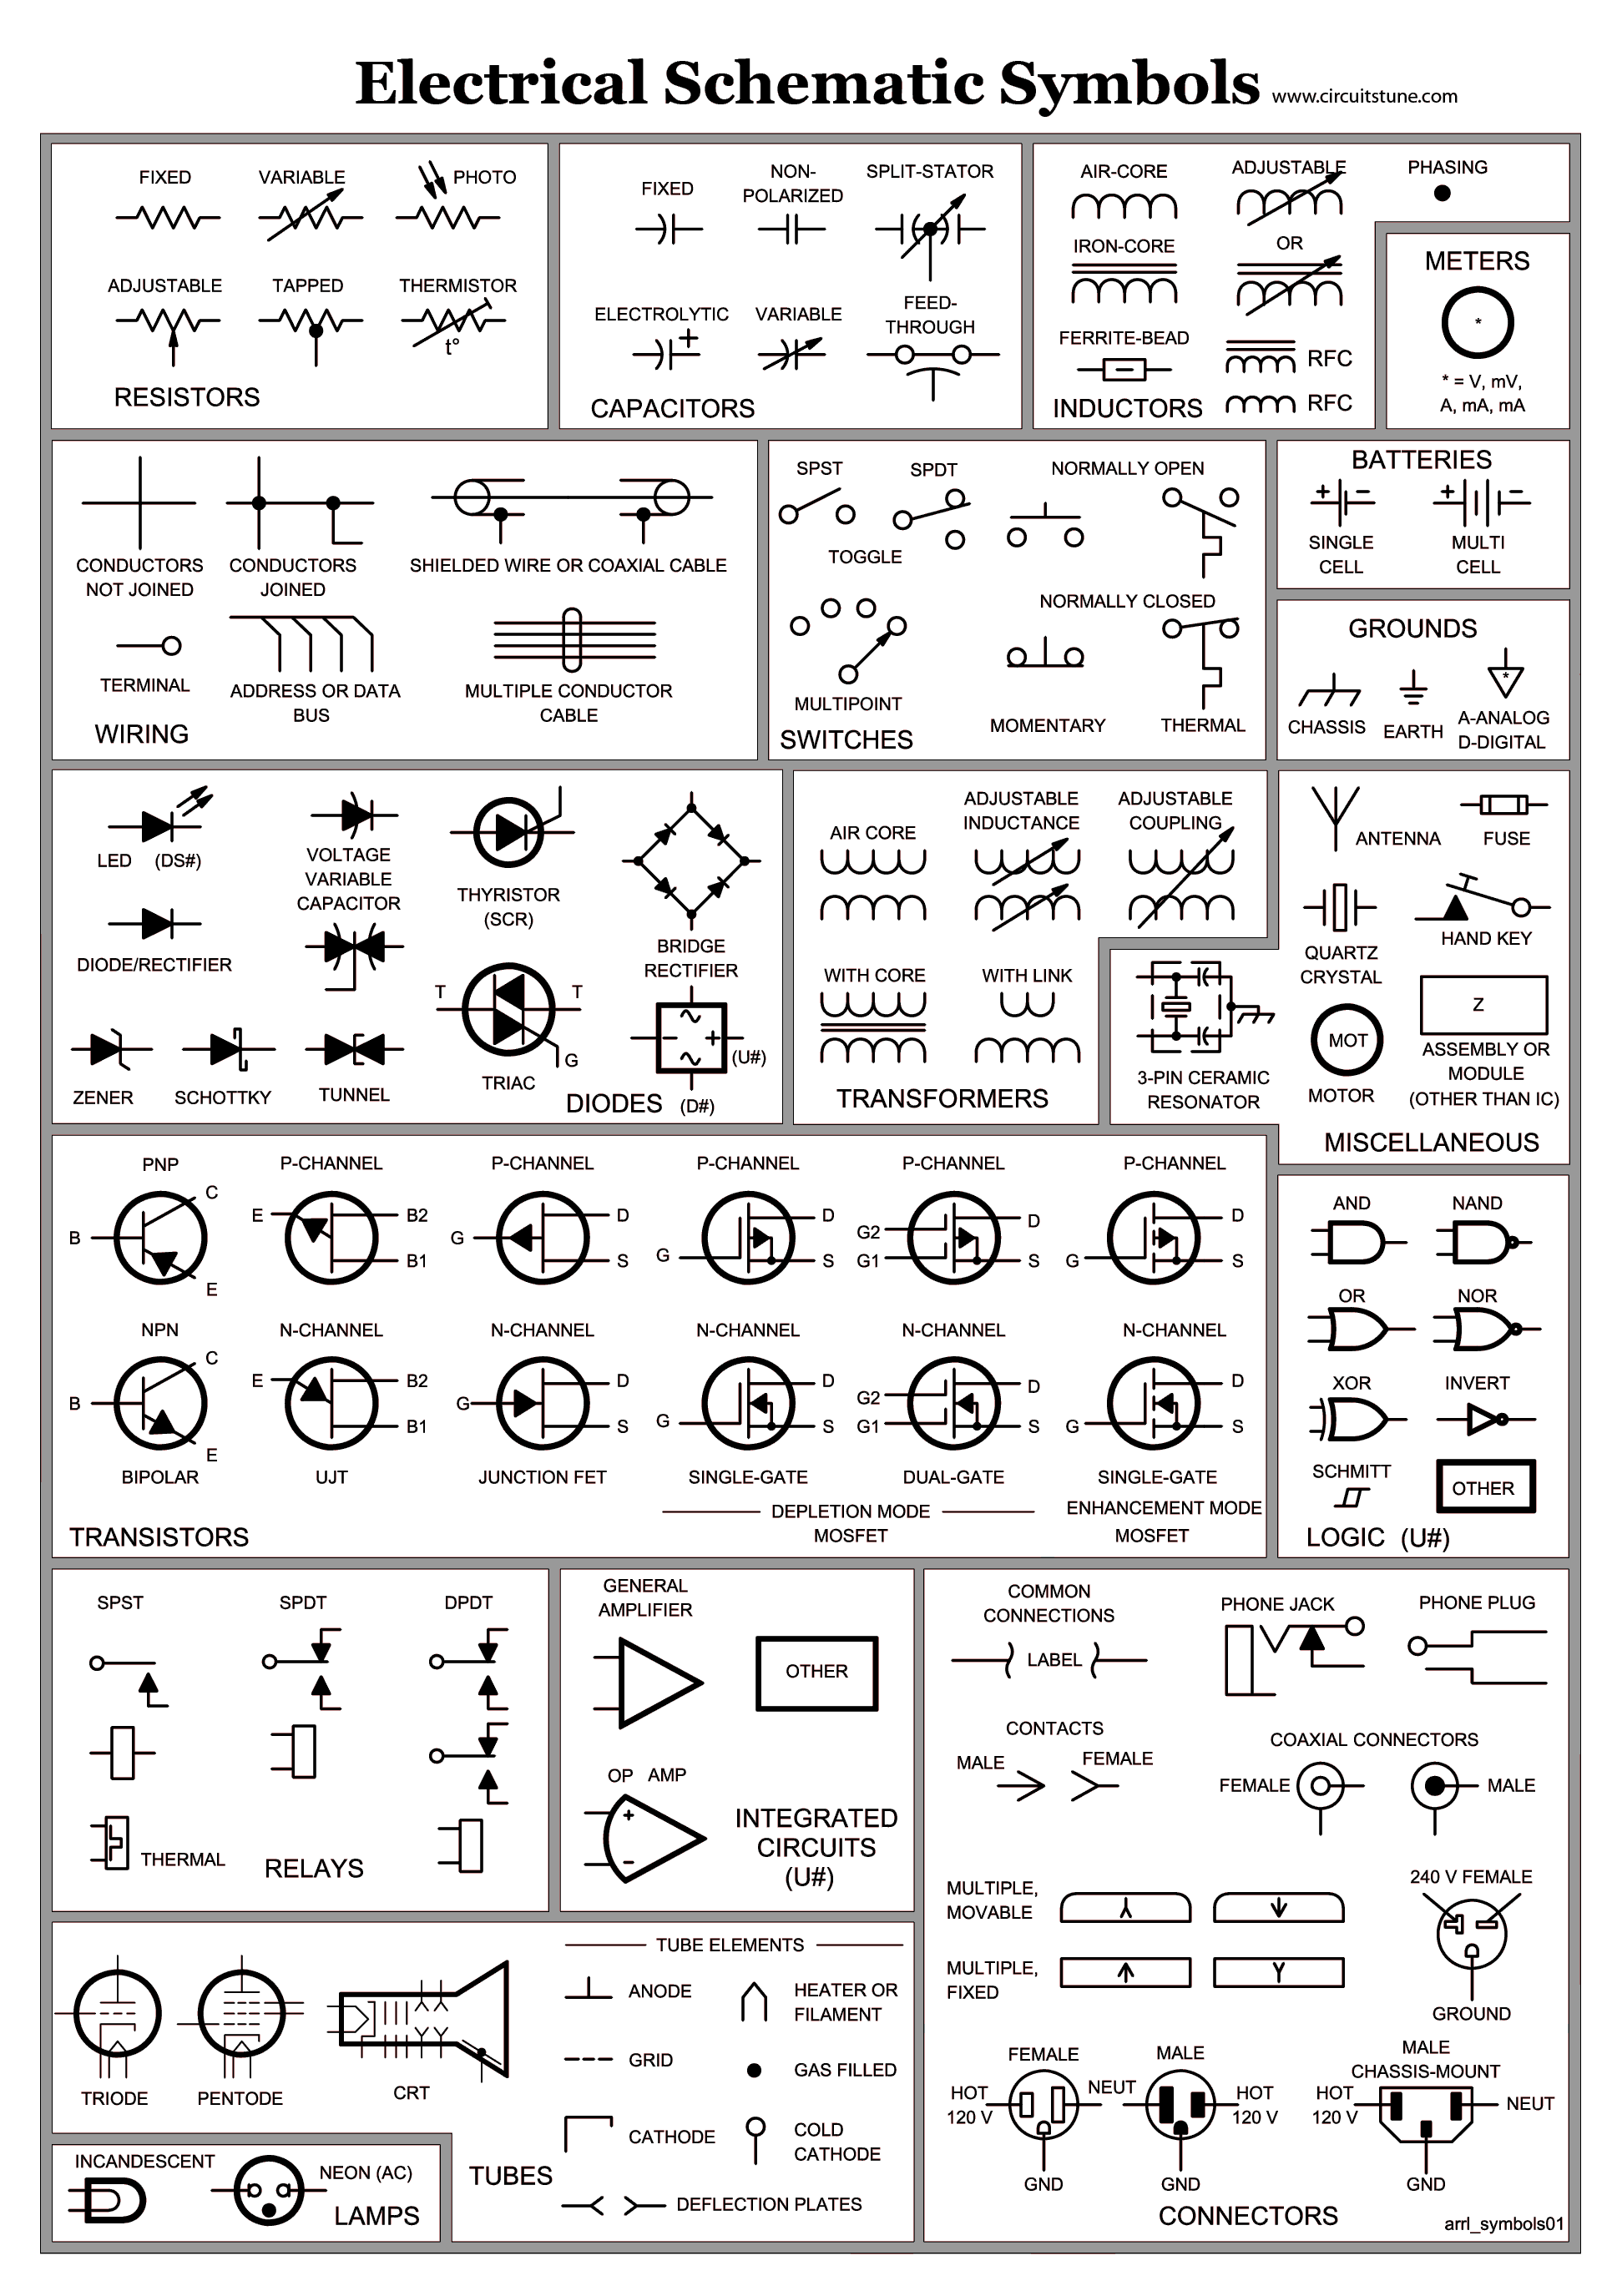 Electrical wiring diagram symbols wiring data electrical schematic symbols wire diagram symbols automotive wiring european wiring diagram symbols electrical schematic symbols wire cheapraybanclubmaster Image collections